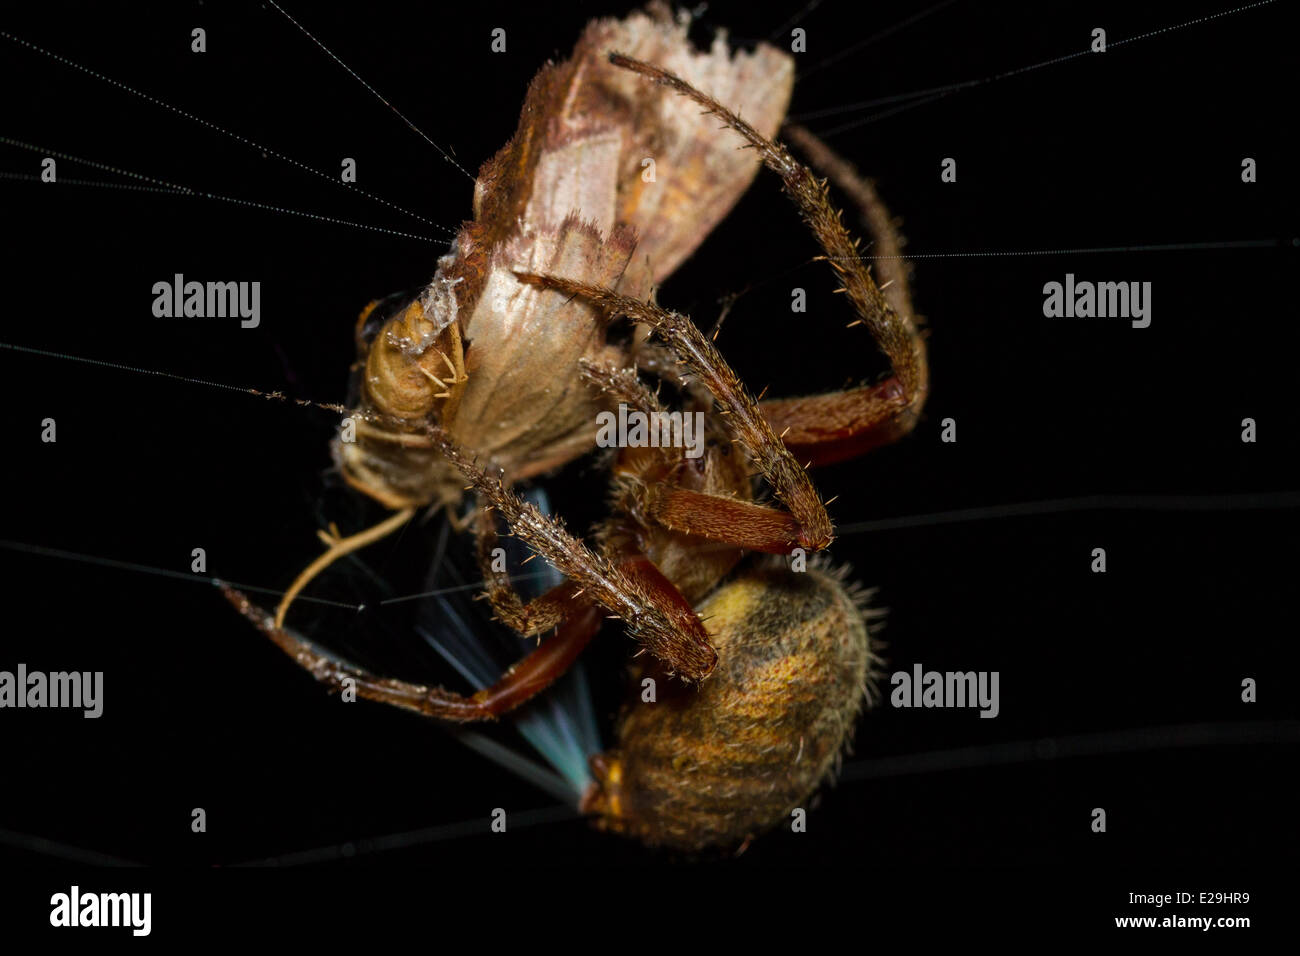 Orb Weaving Spider with captured Moth - Stock Image